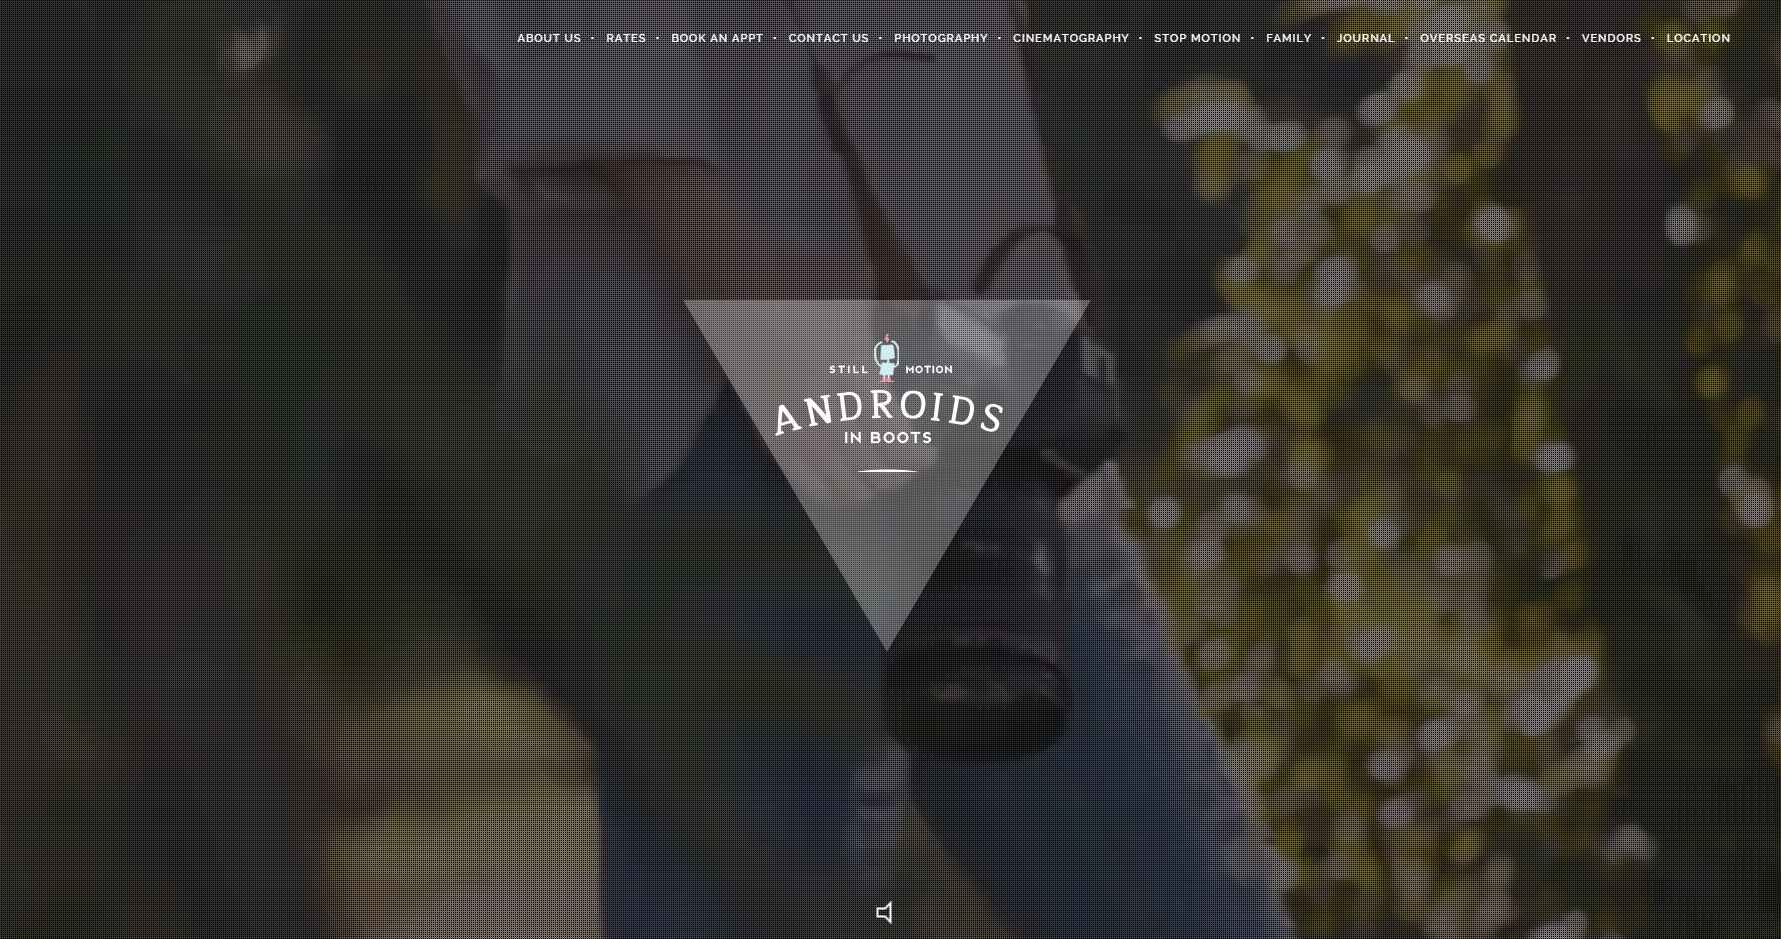 androids in boots Top Wedding Videography Services in Singapore